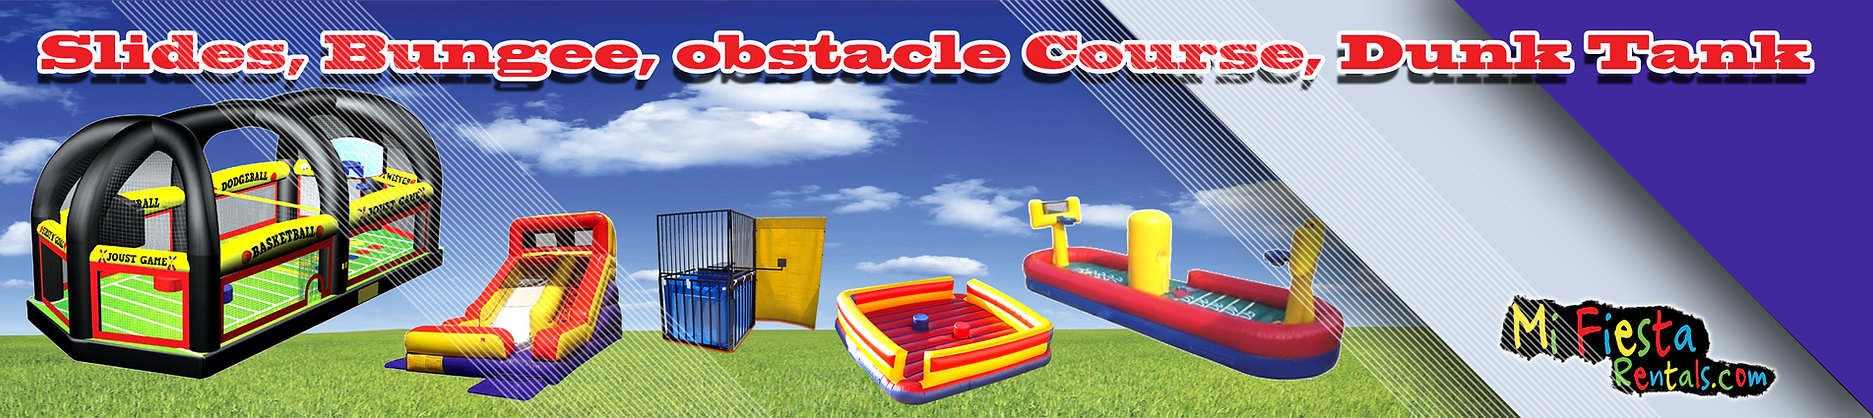 Obstacle Course Rentals, Dunk Tank, Slides, Bungee